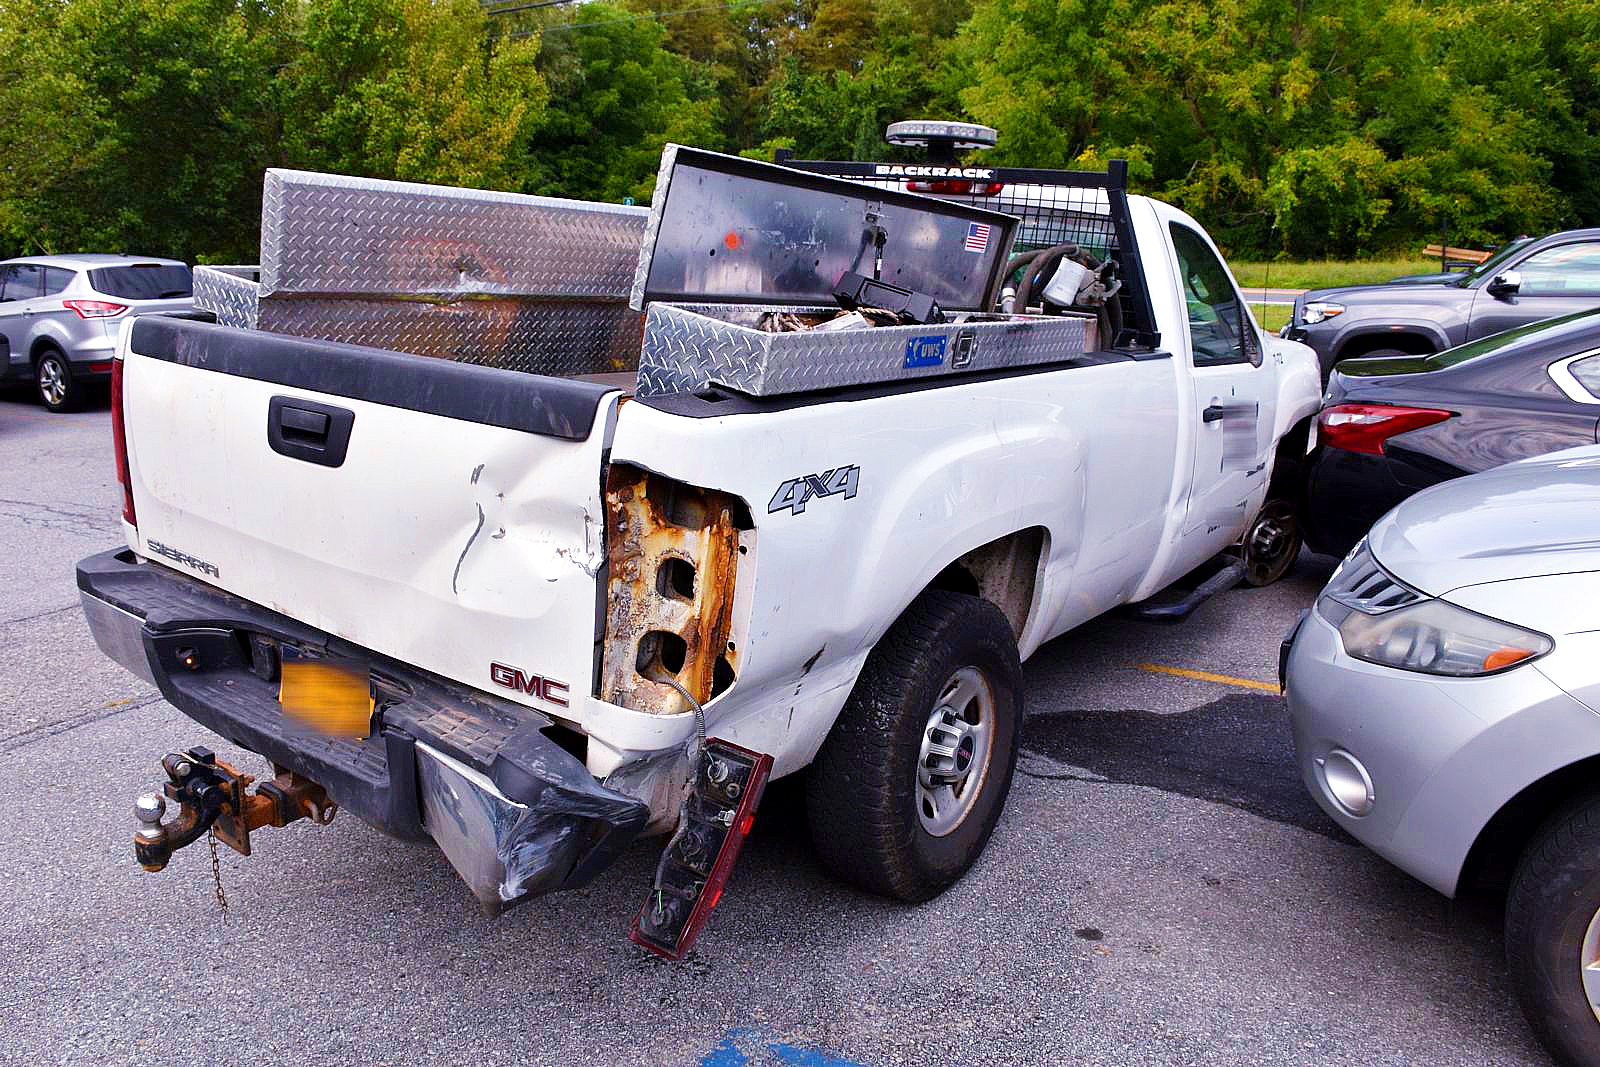 A pick up truck stolen from Poughkeepsie and recovered in Lagrange